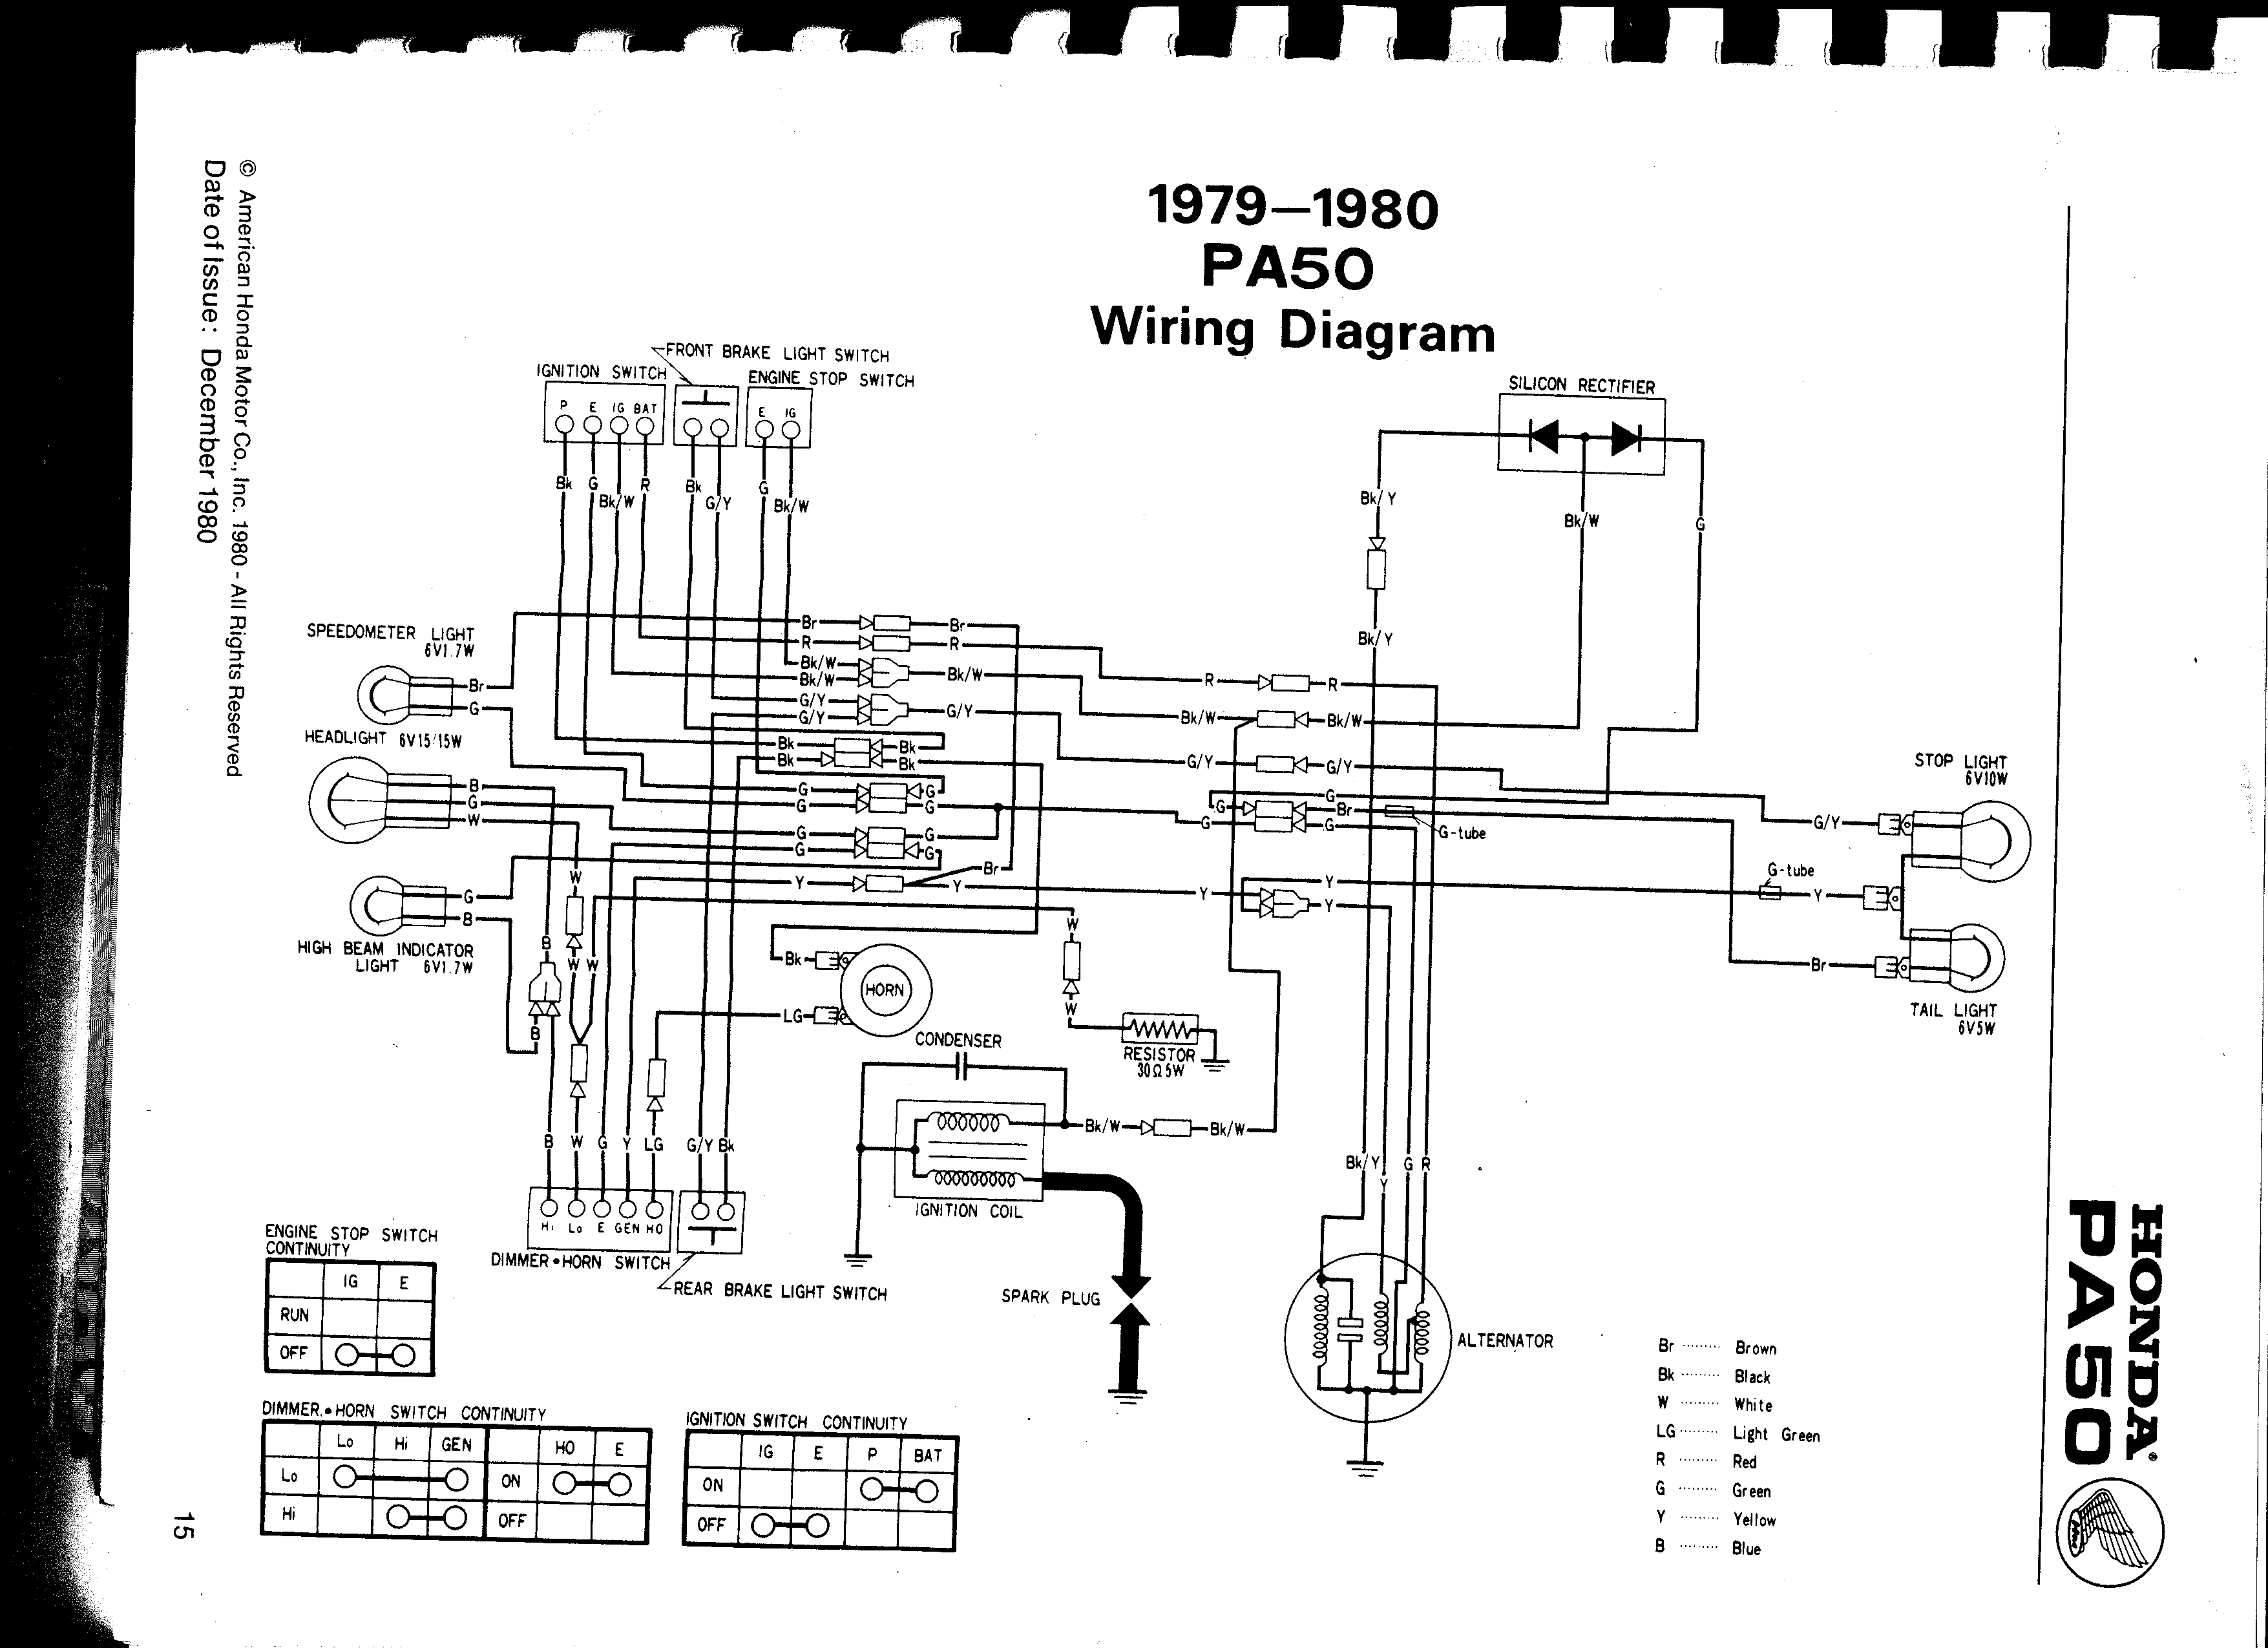 honda today 50 wiring diagram what is a network and why it important re 1980 pa